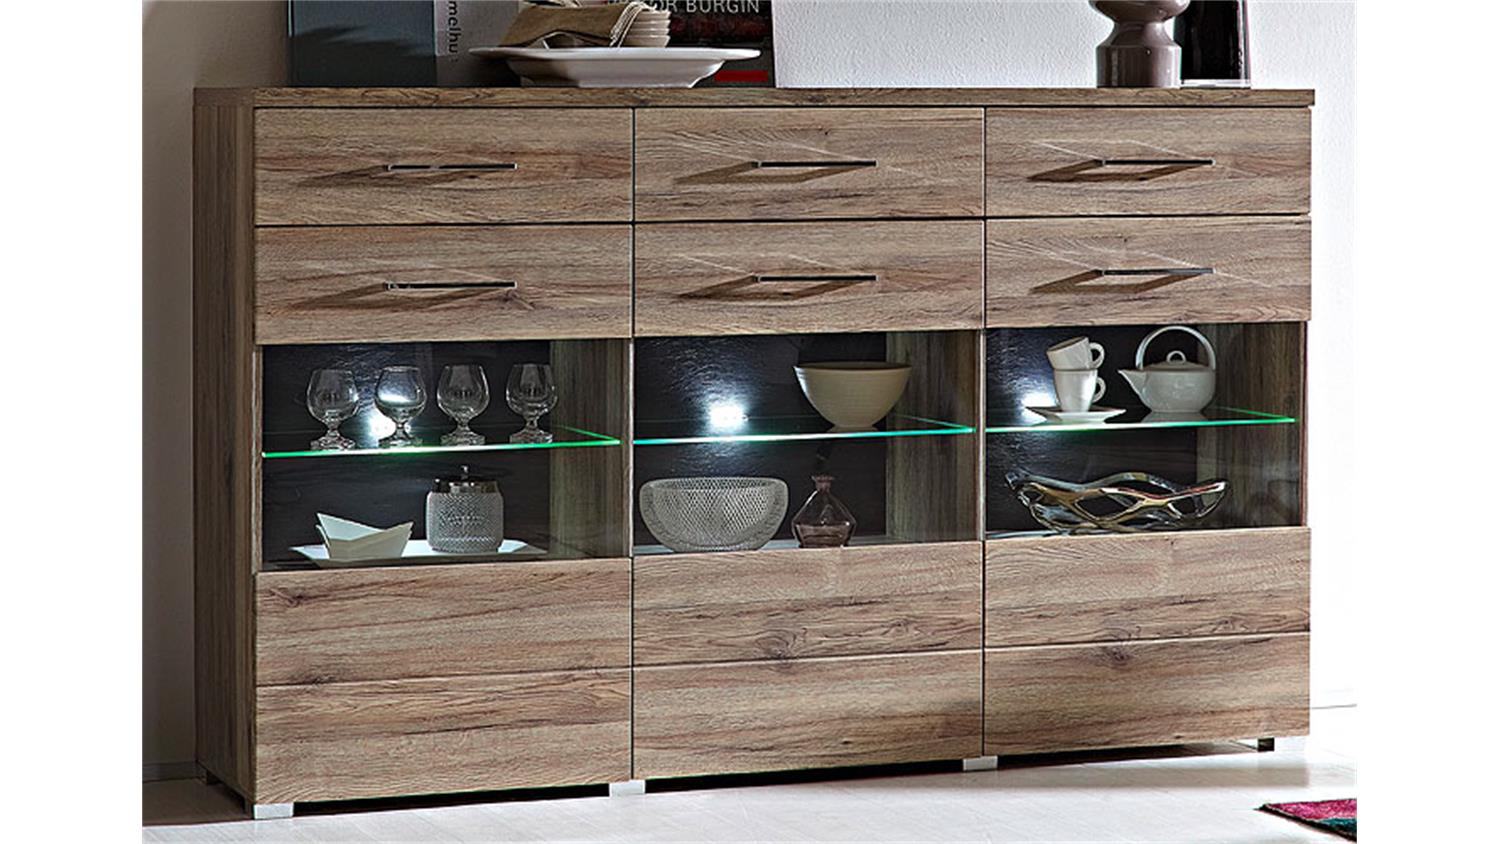 Deal Möbel Highboard Deal Schrank San Remo Eiche Glaseinsatz Und Led